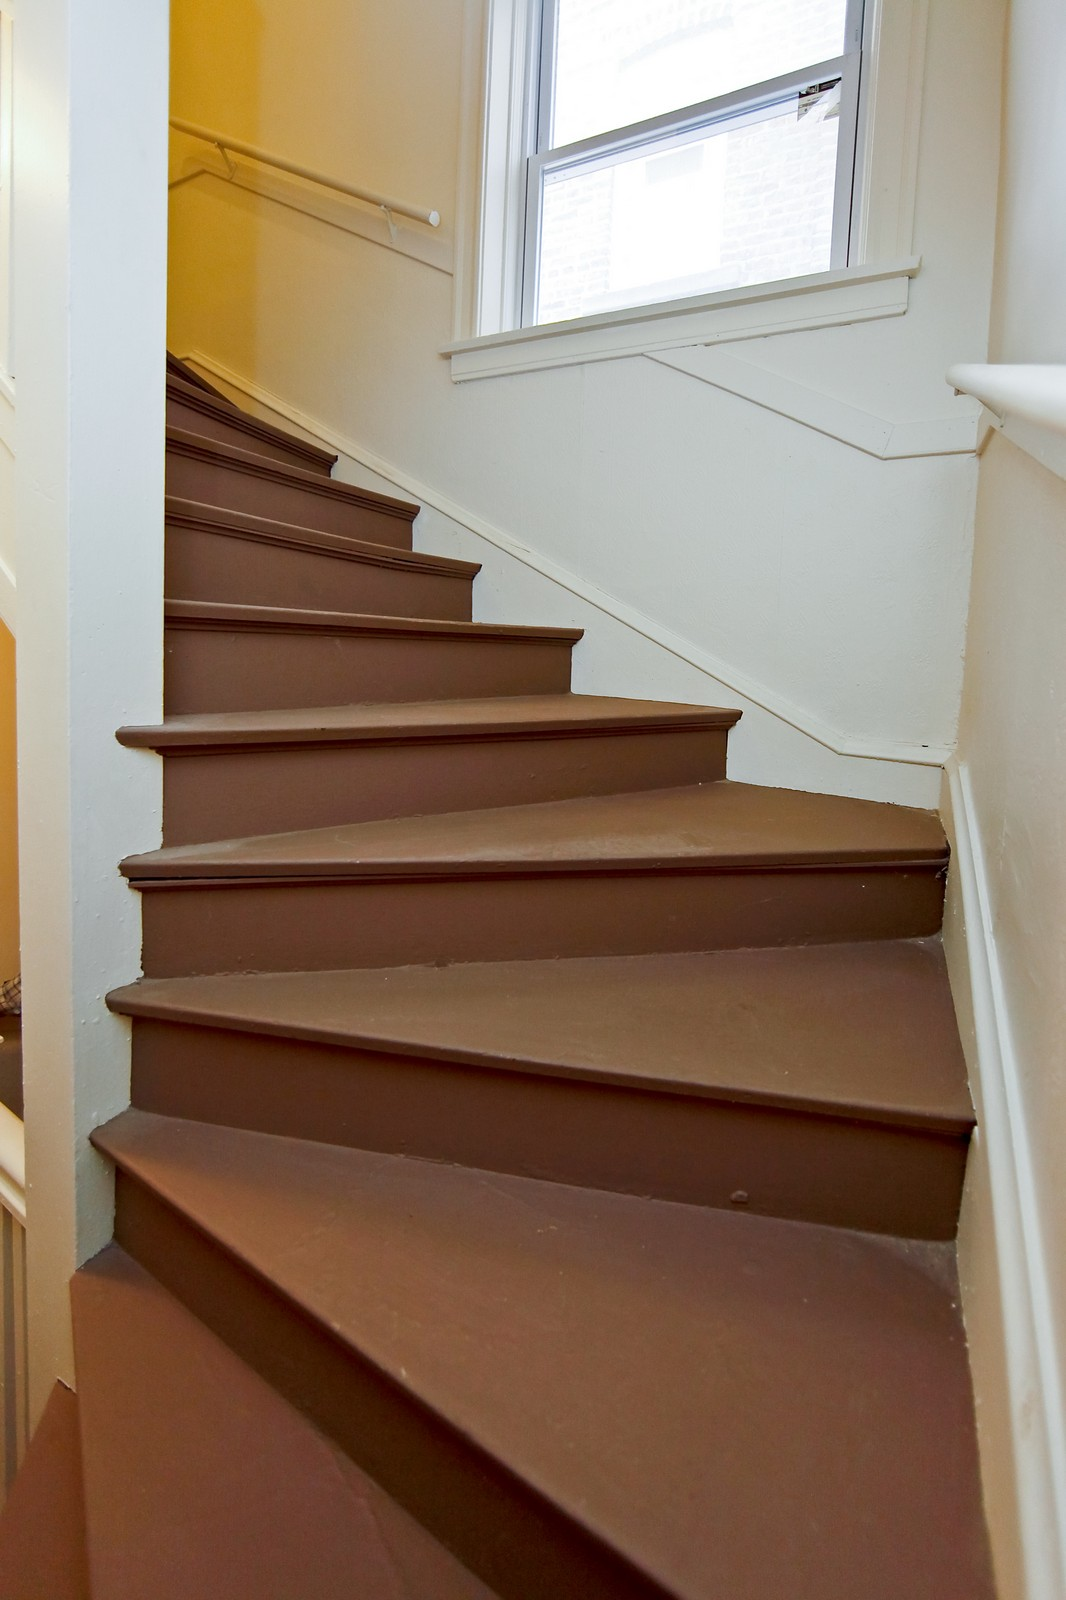 Real Estate Photography - 3332 W Polk St, Chicago, IL, 60624 - Staircase